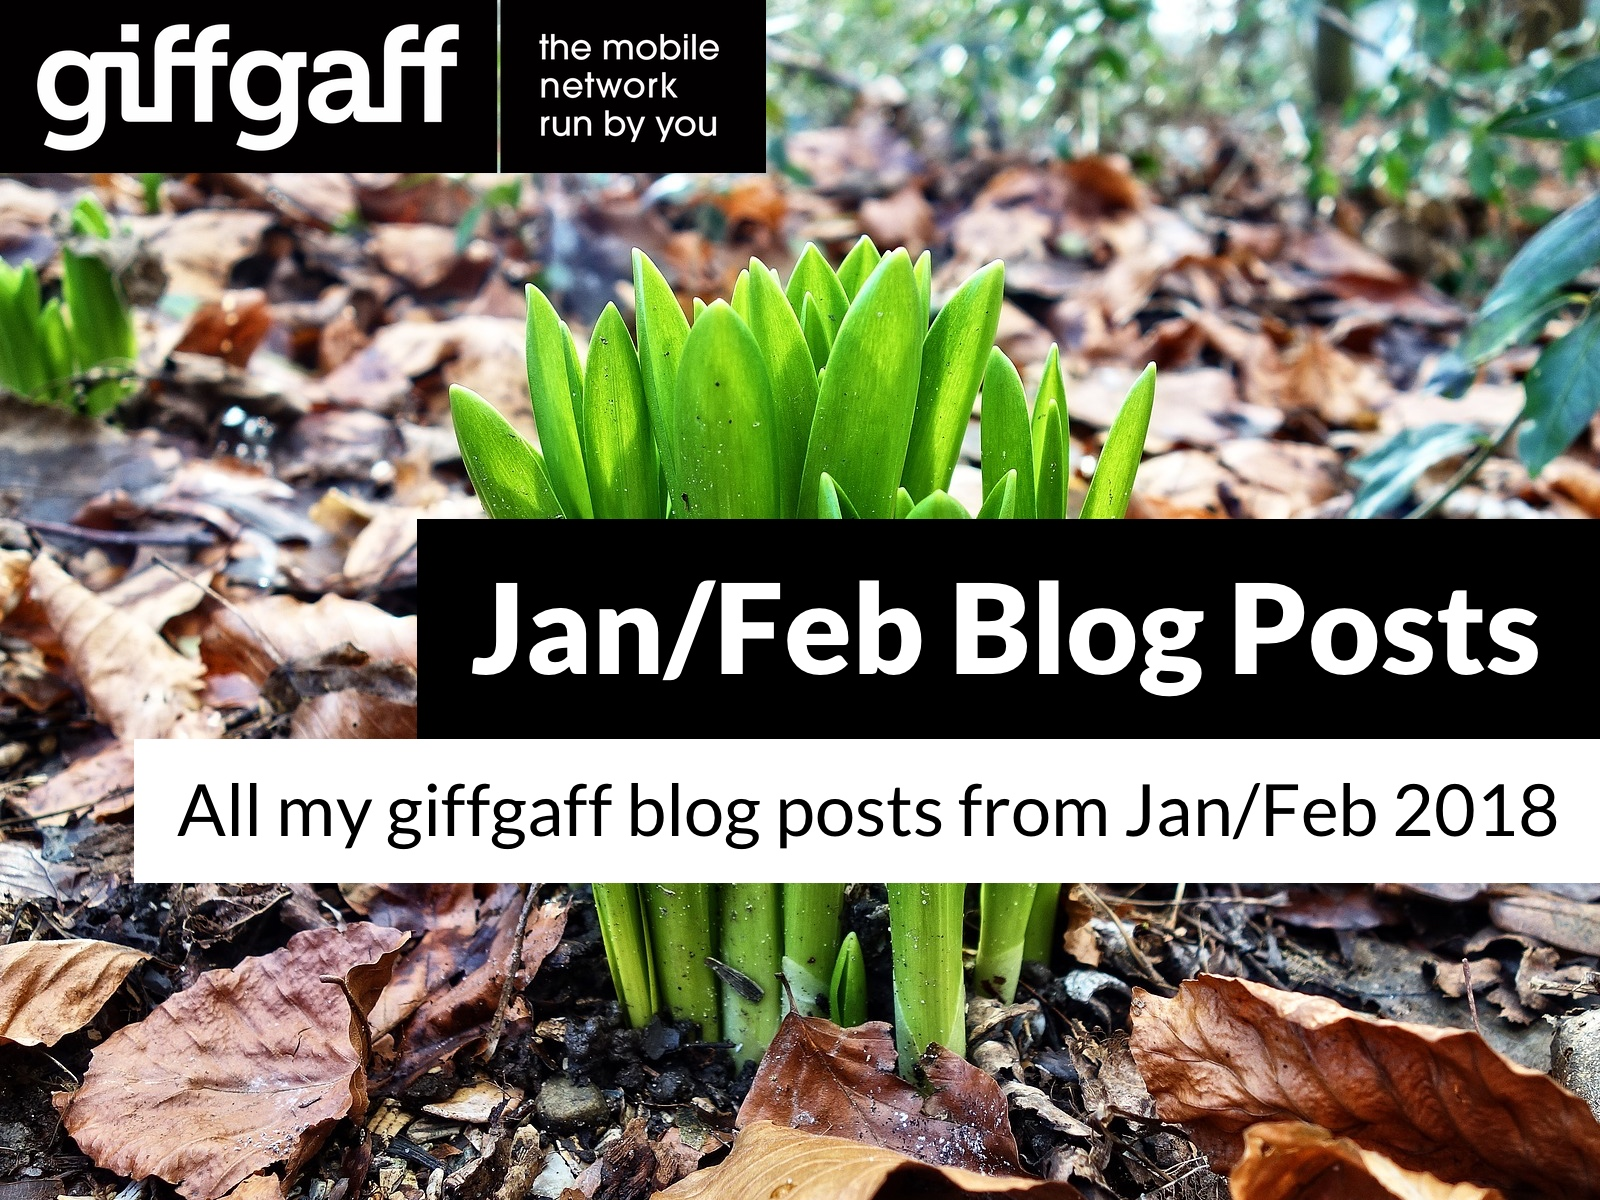 Jan/Feb 2018 Blog Posts